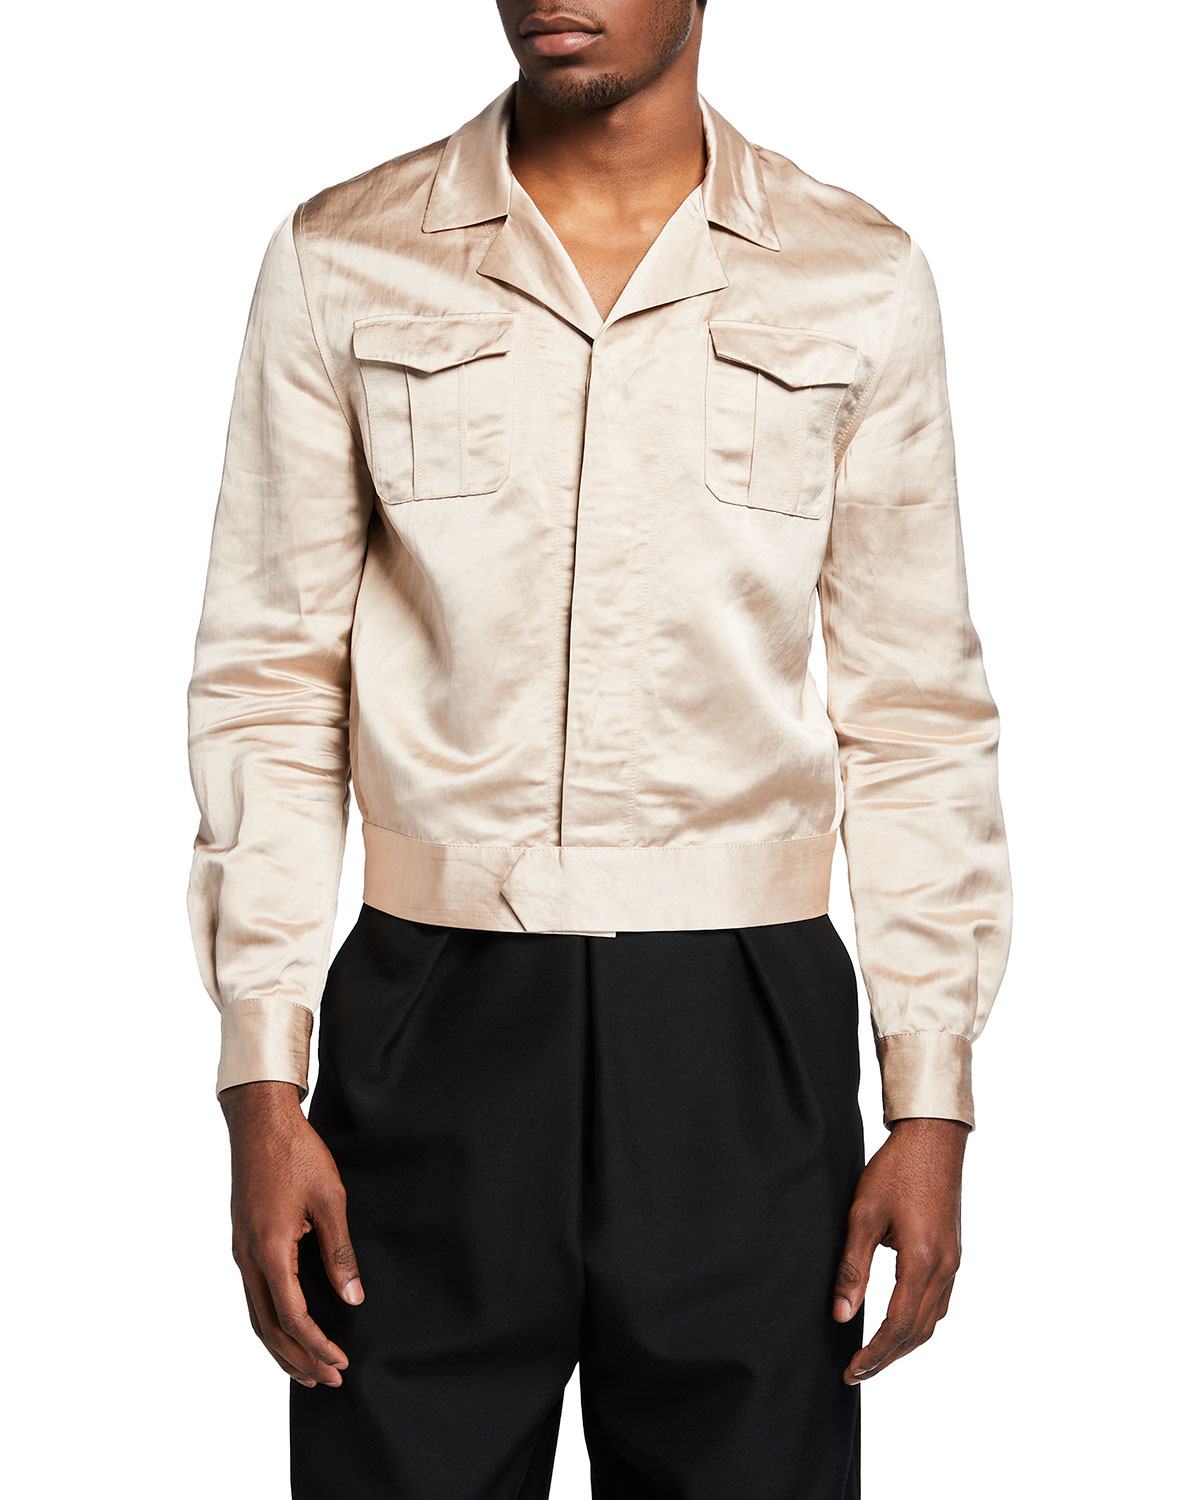 Saint Laurent MEN'S SATIN 2-POCKET TEDDY JACKET